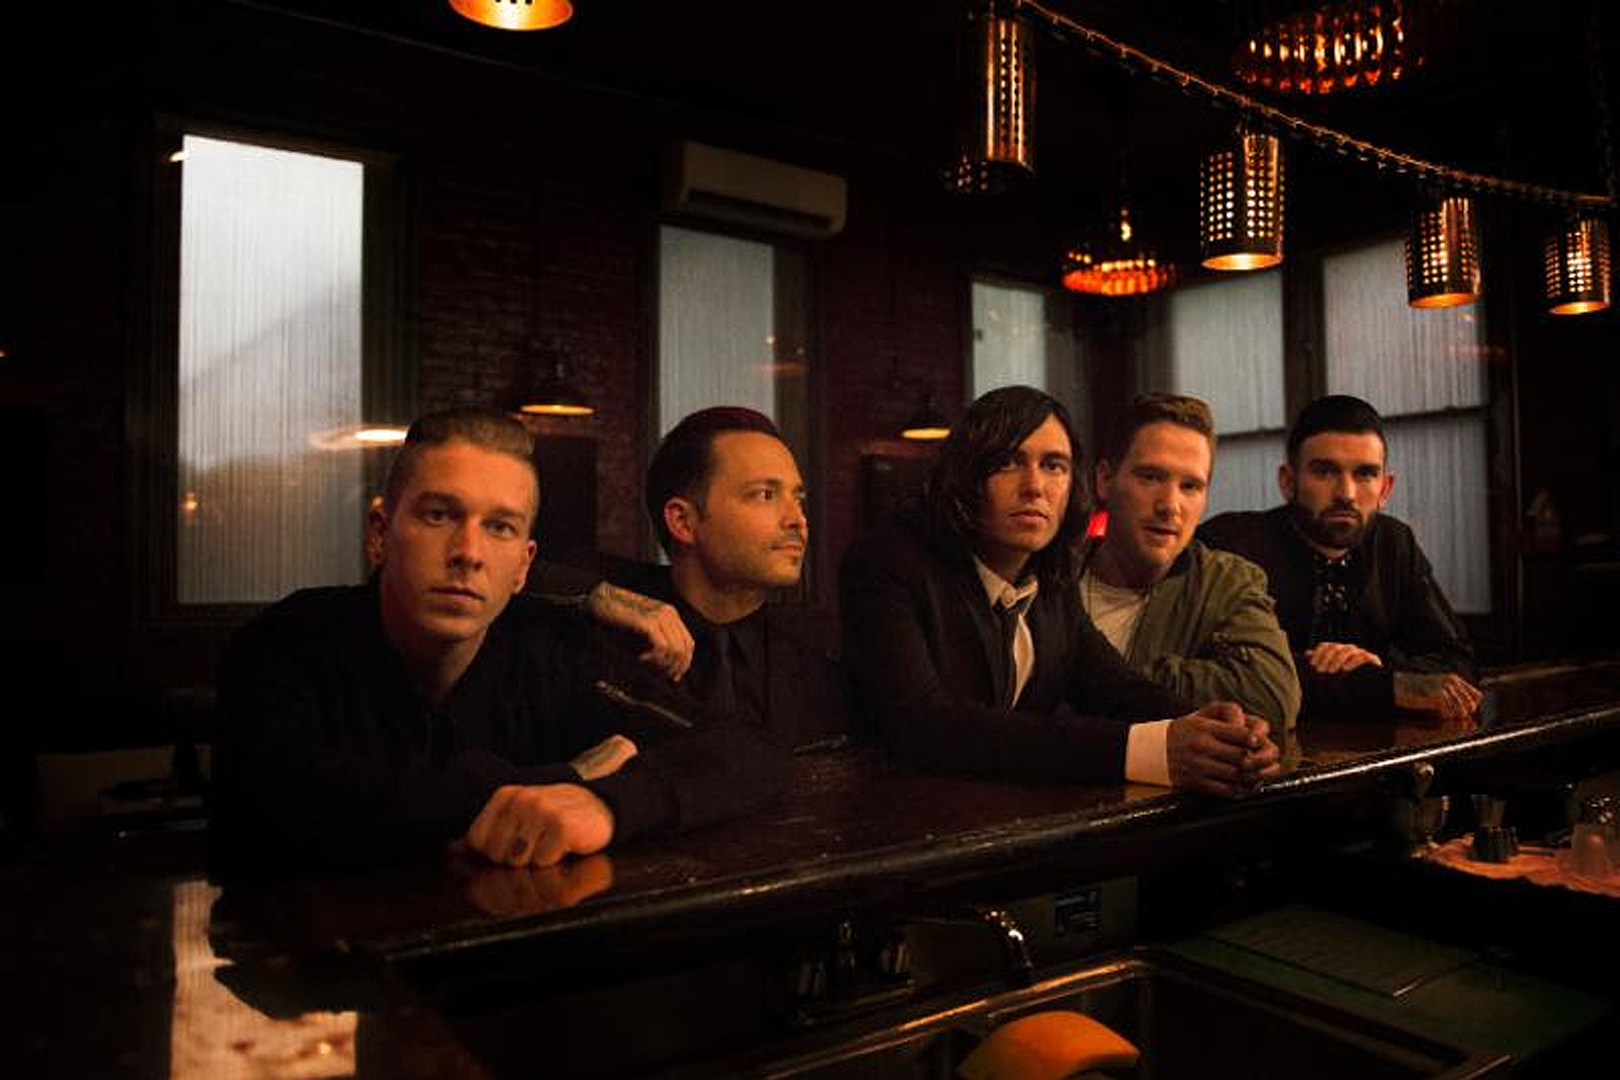 Sleeping With Sirens Find 'Legends' in Their Fans With New Video